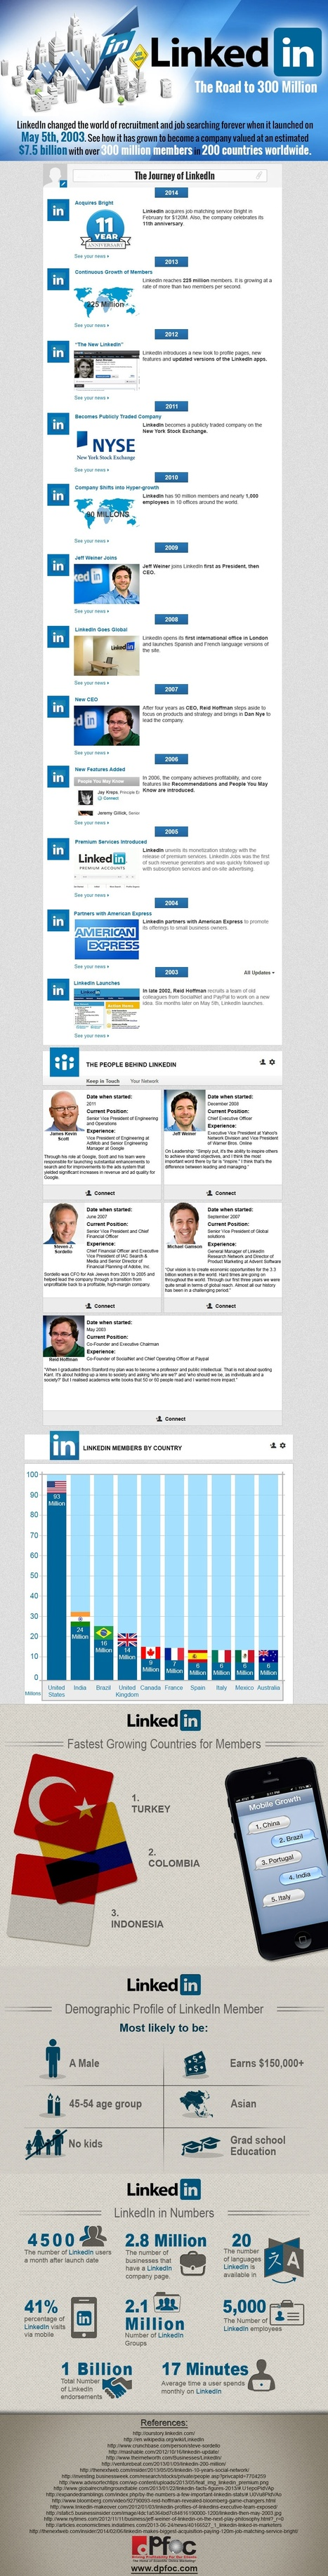 11 Years of LinkedIn in Numbers [Infographic] | Social Networking Tools | Scoop.it